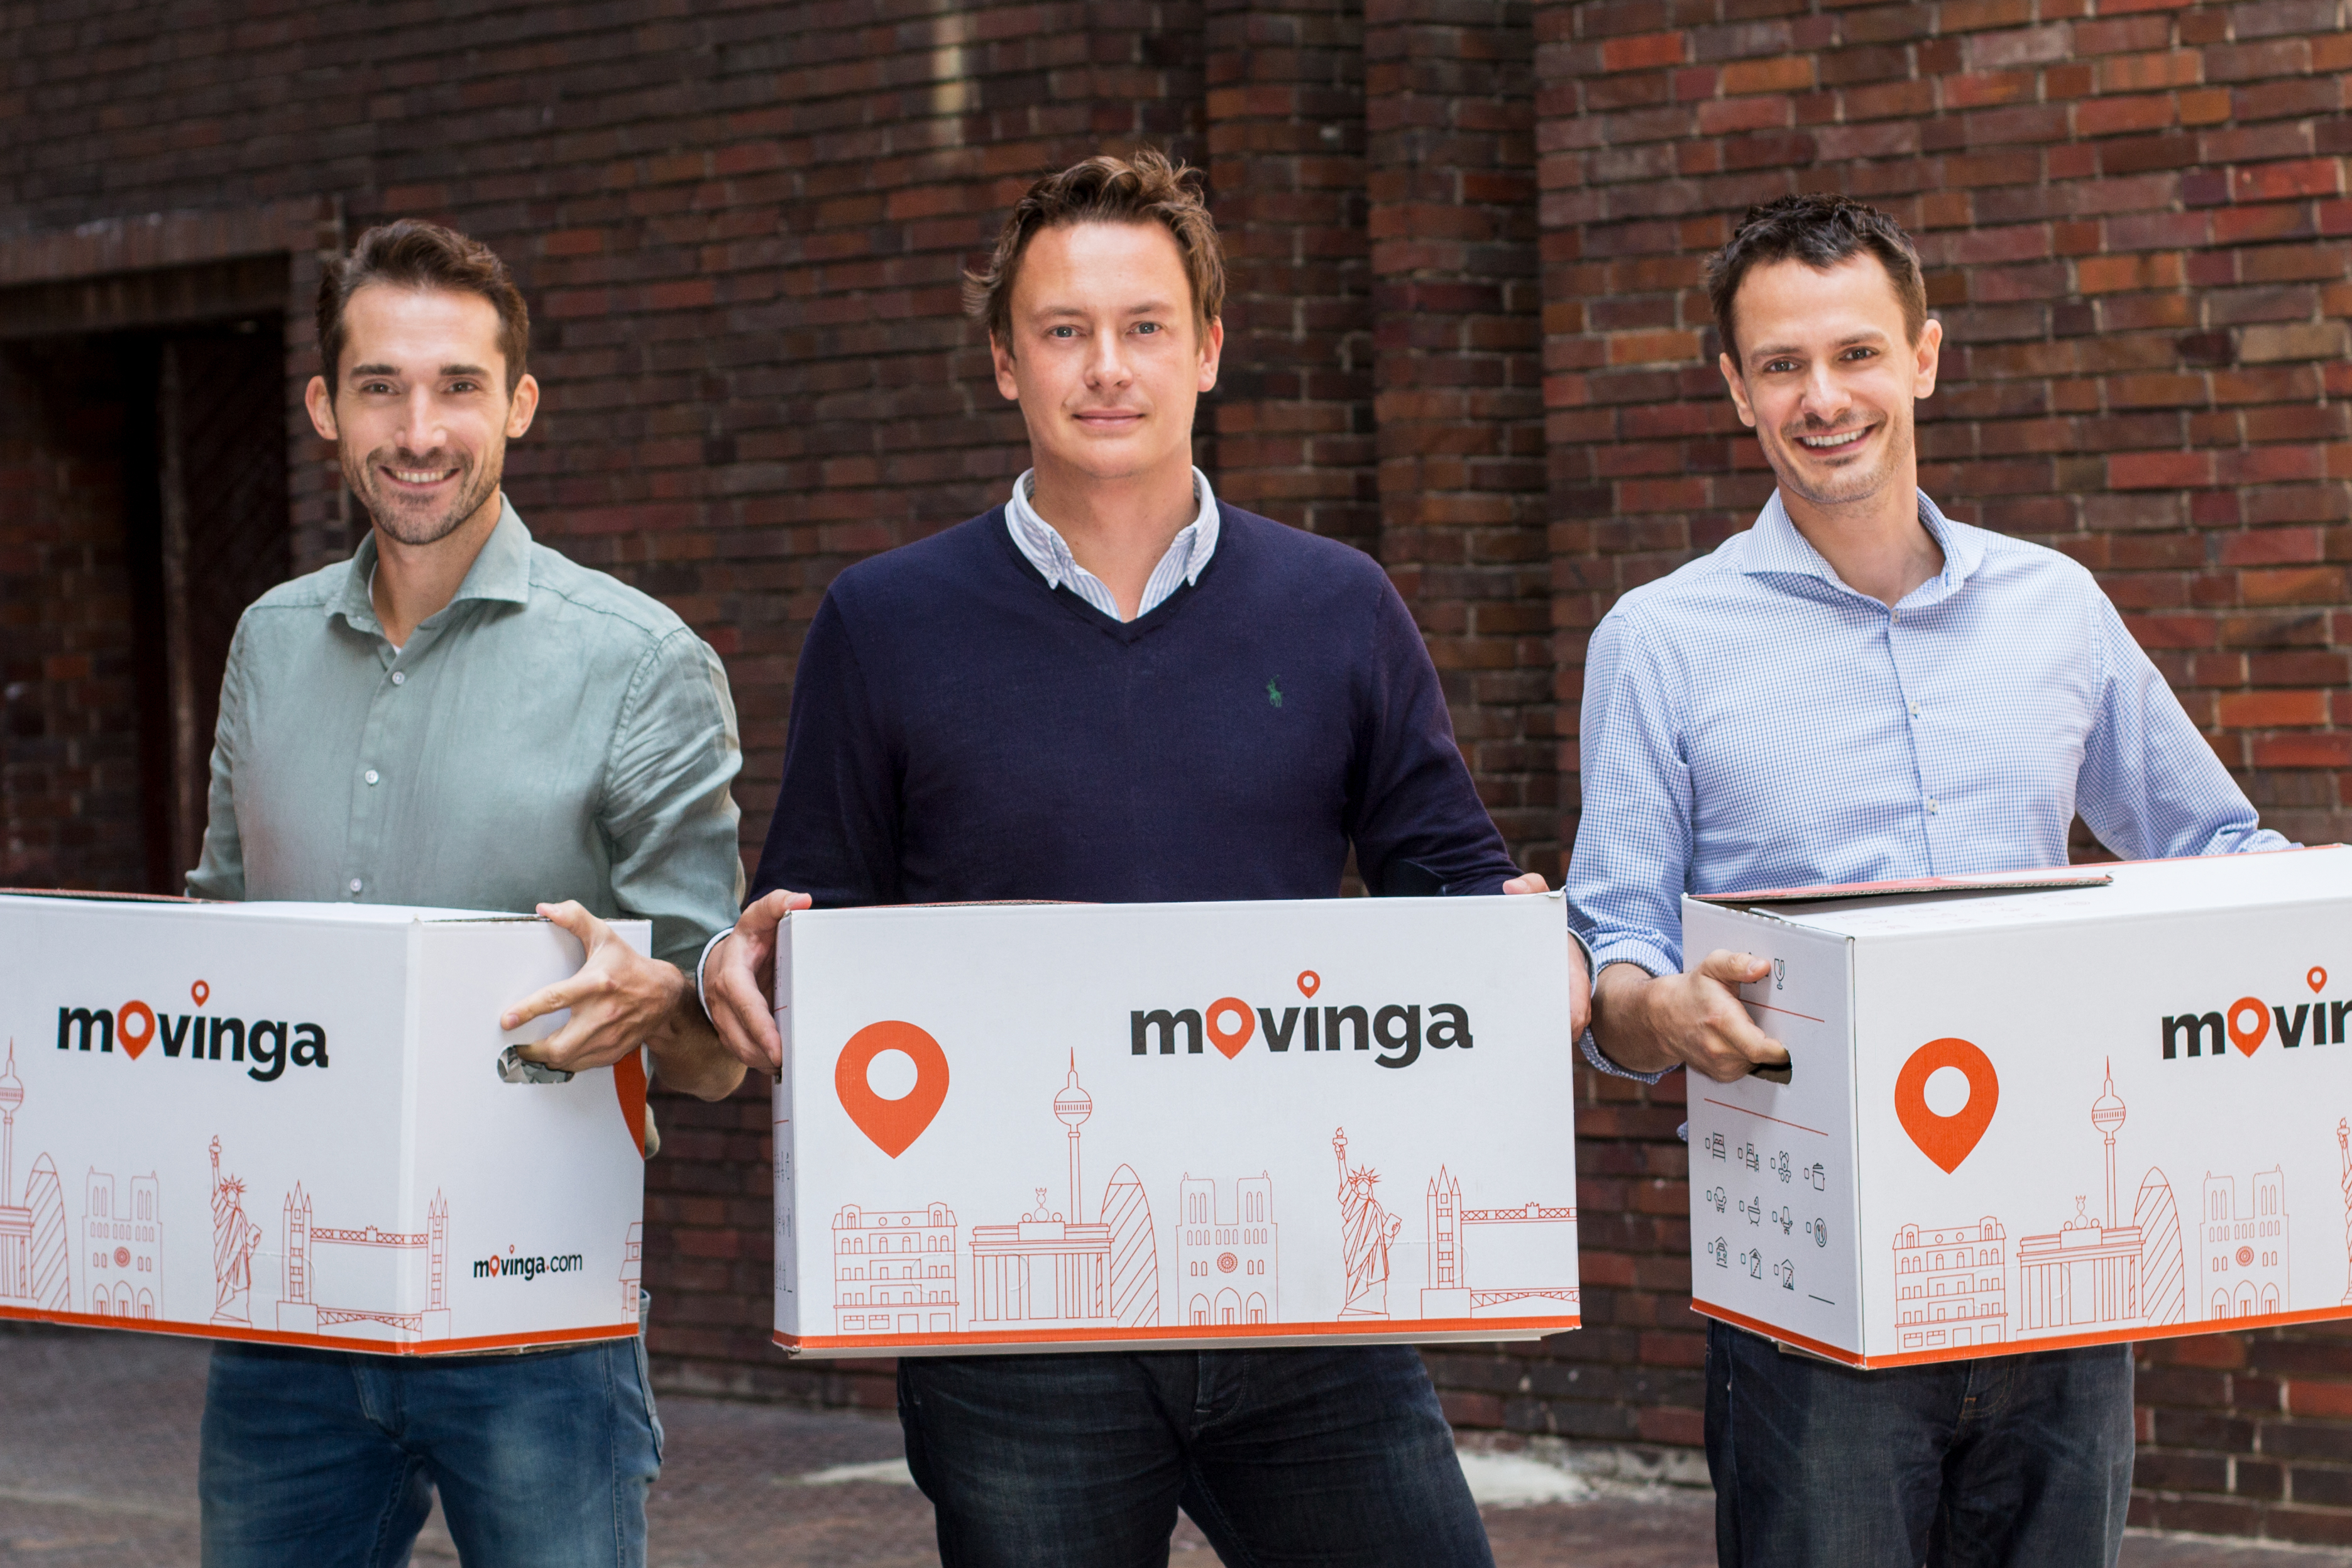 picture of 3 men holding movinga labelled boxes.